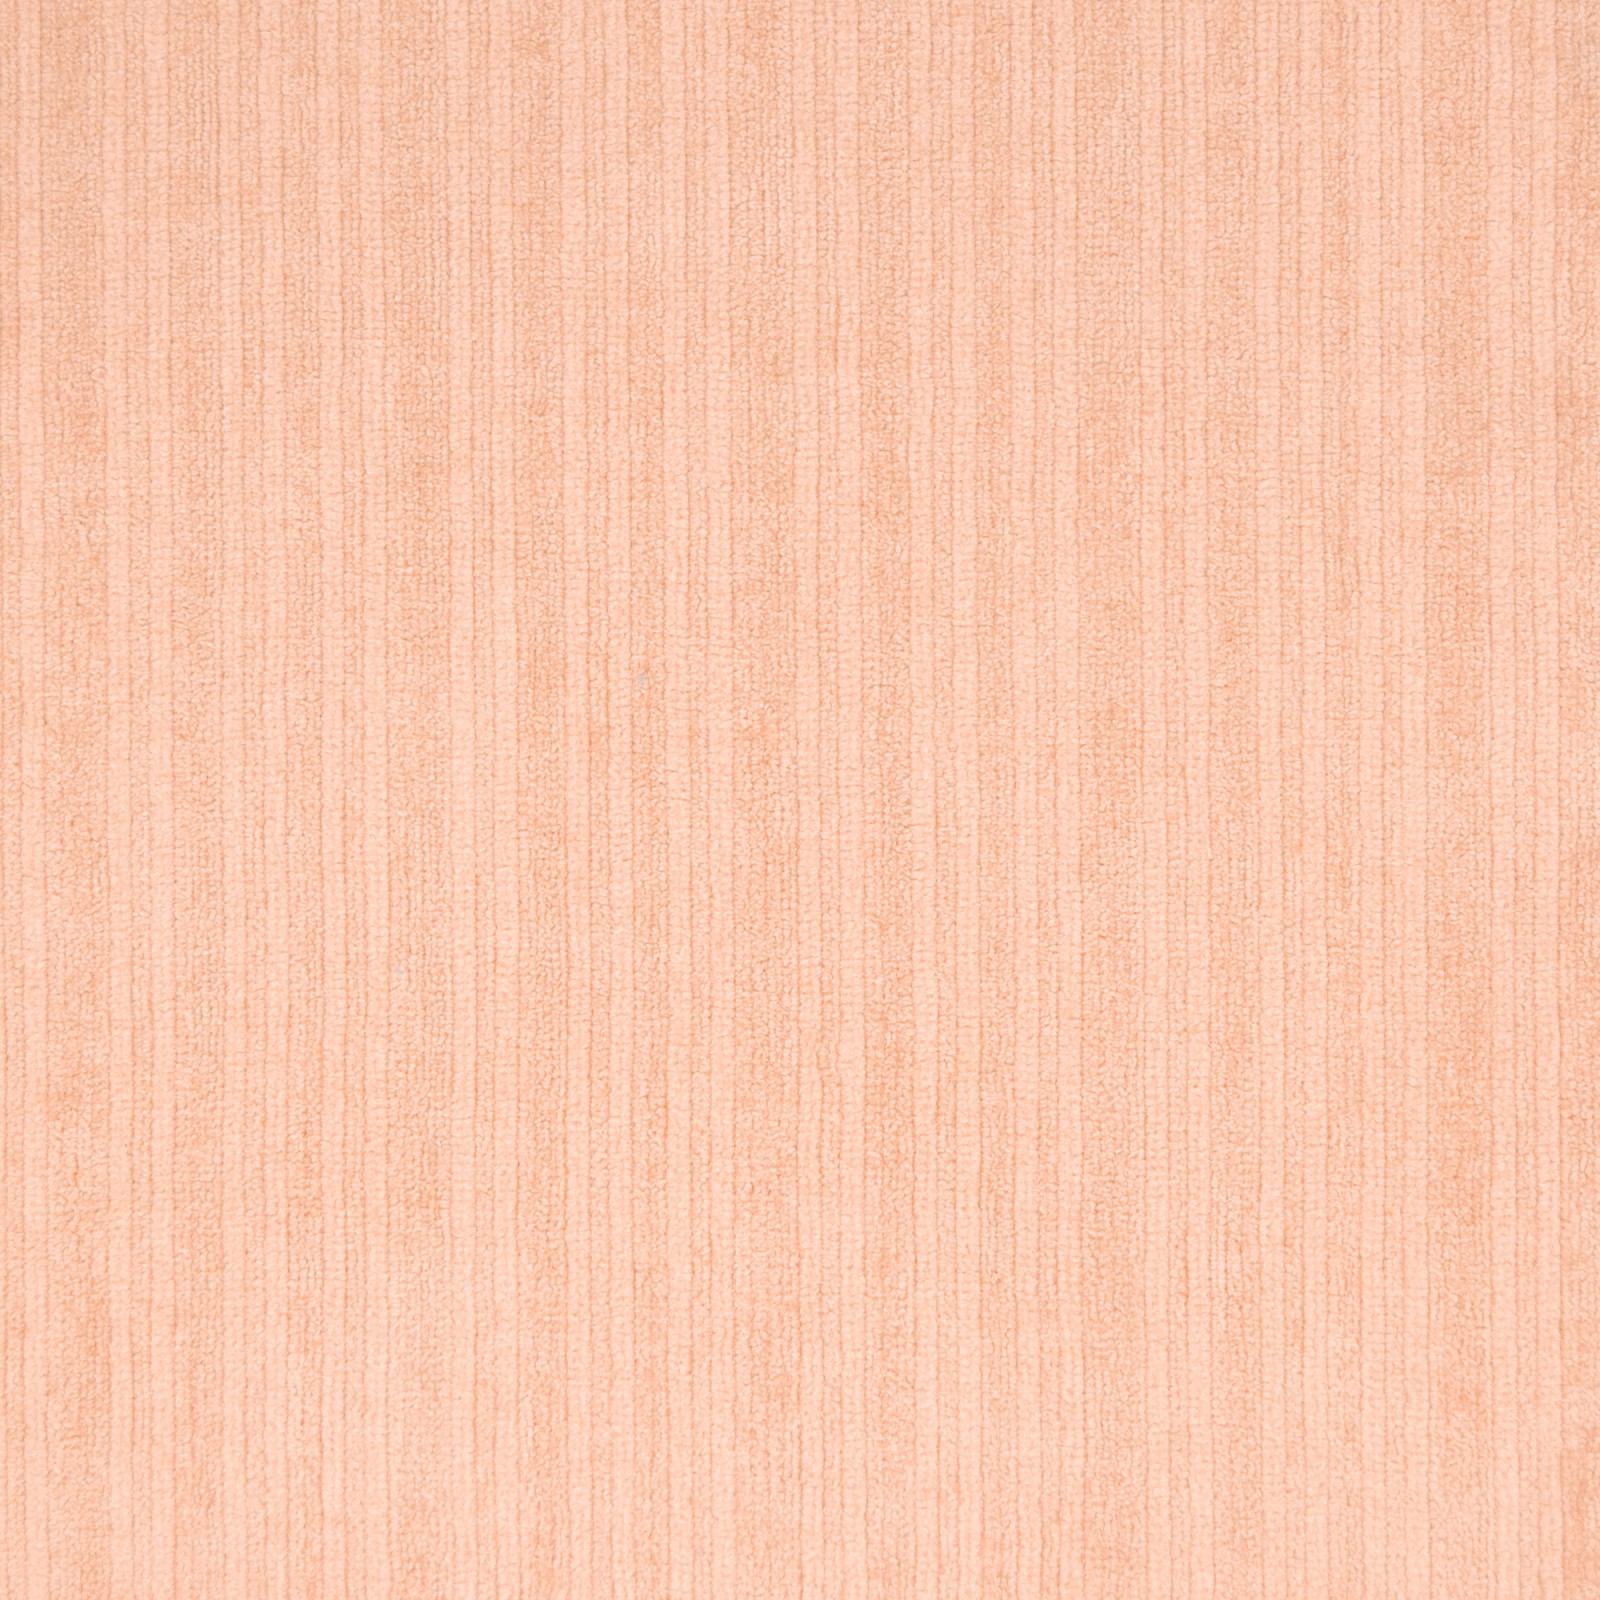 Peach Orange Solid Outdoor Upholstery Fabric